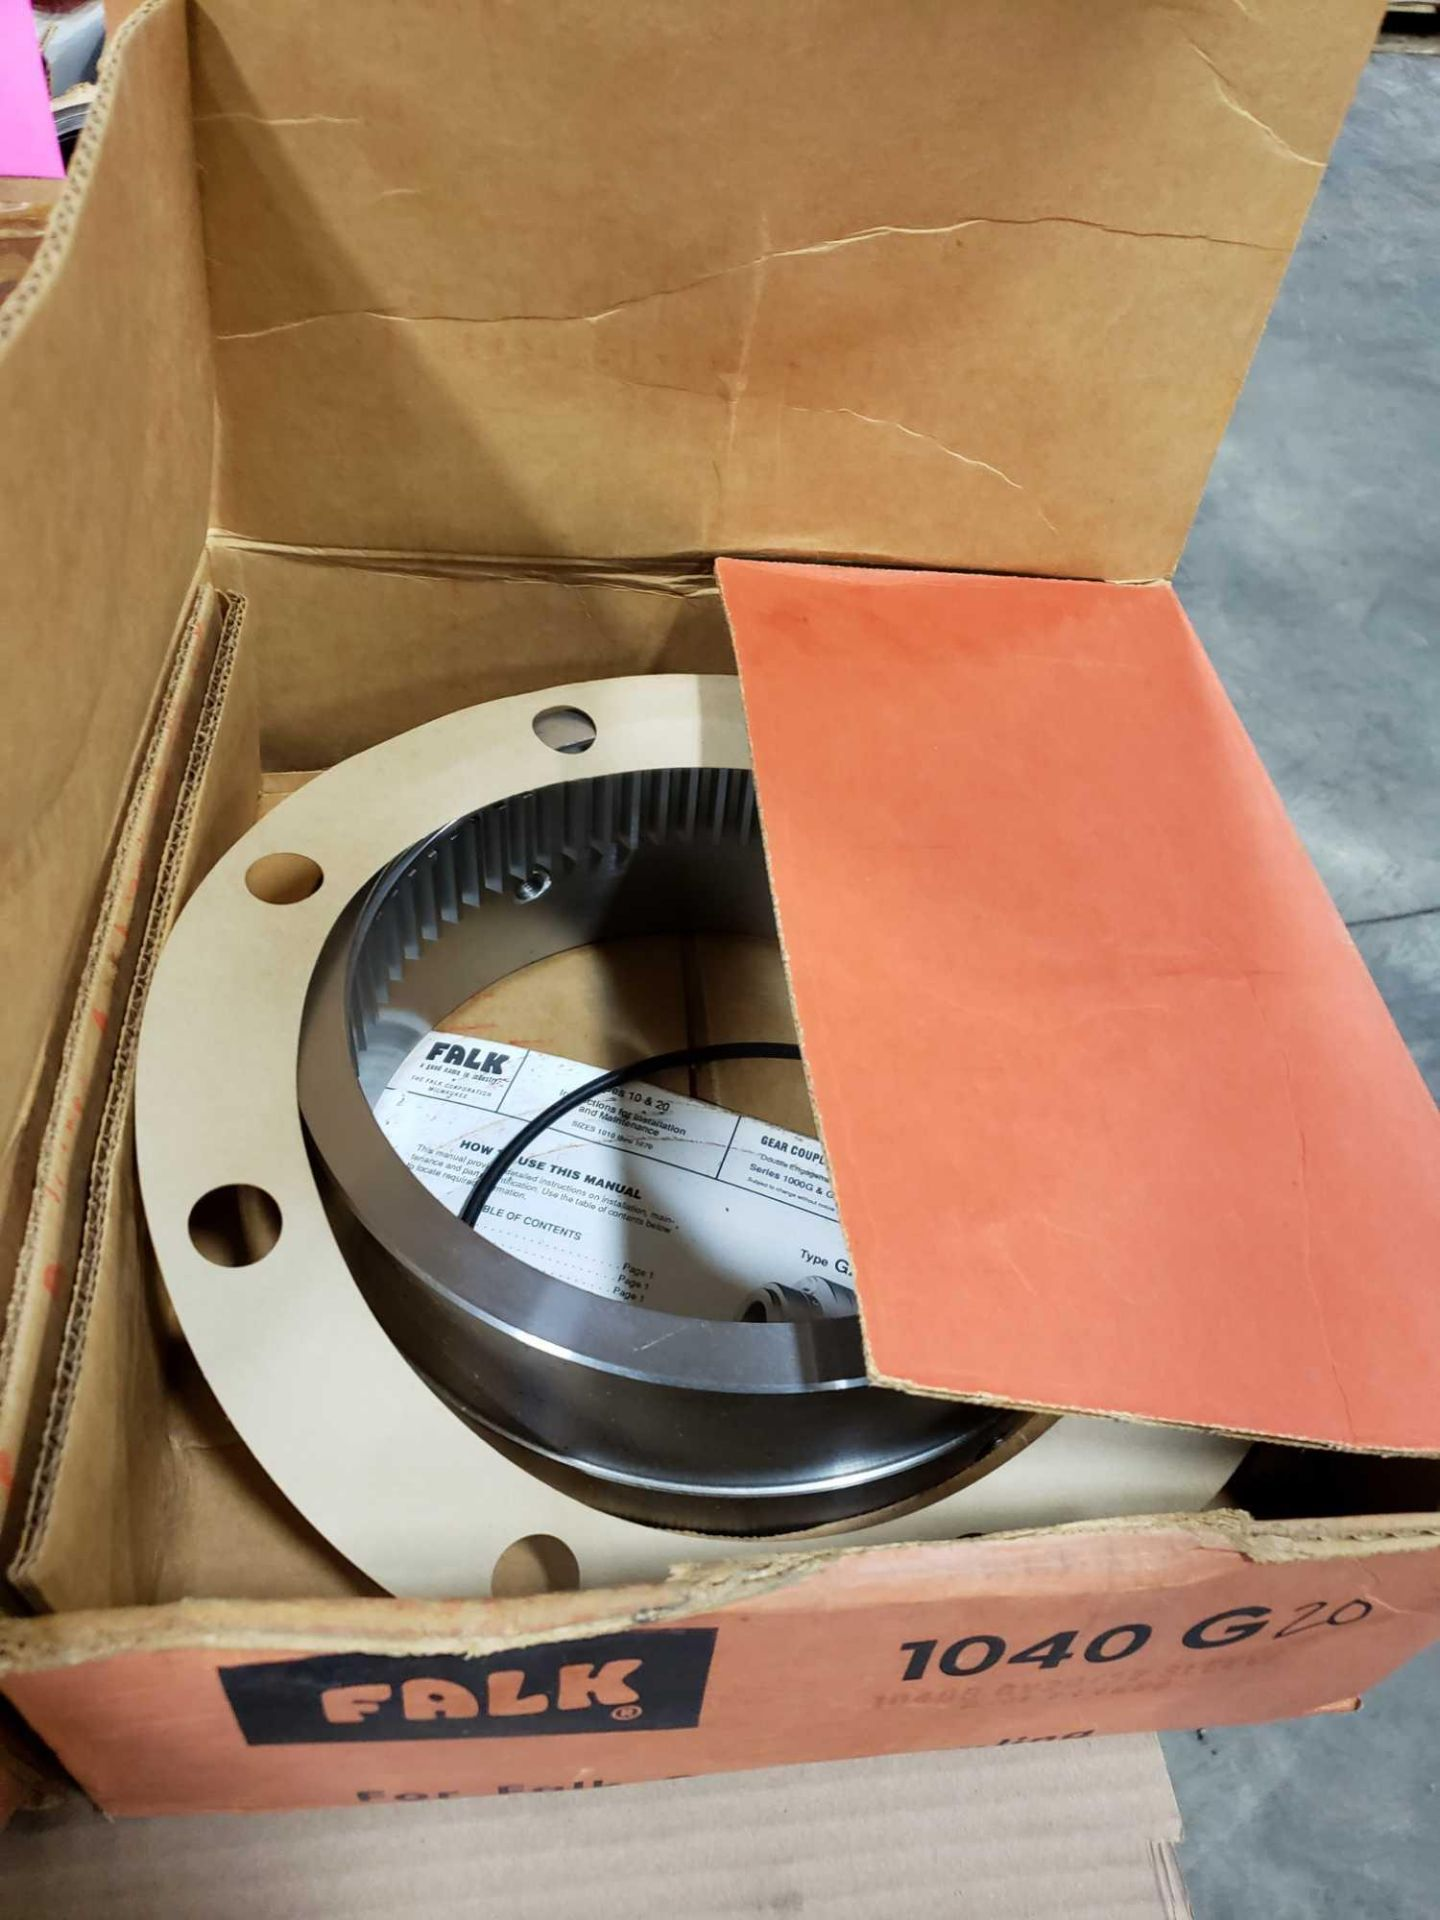 Lot 45 - Falk 1040G20 coupling component. New in box.